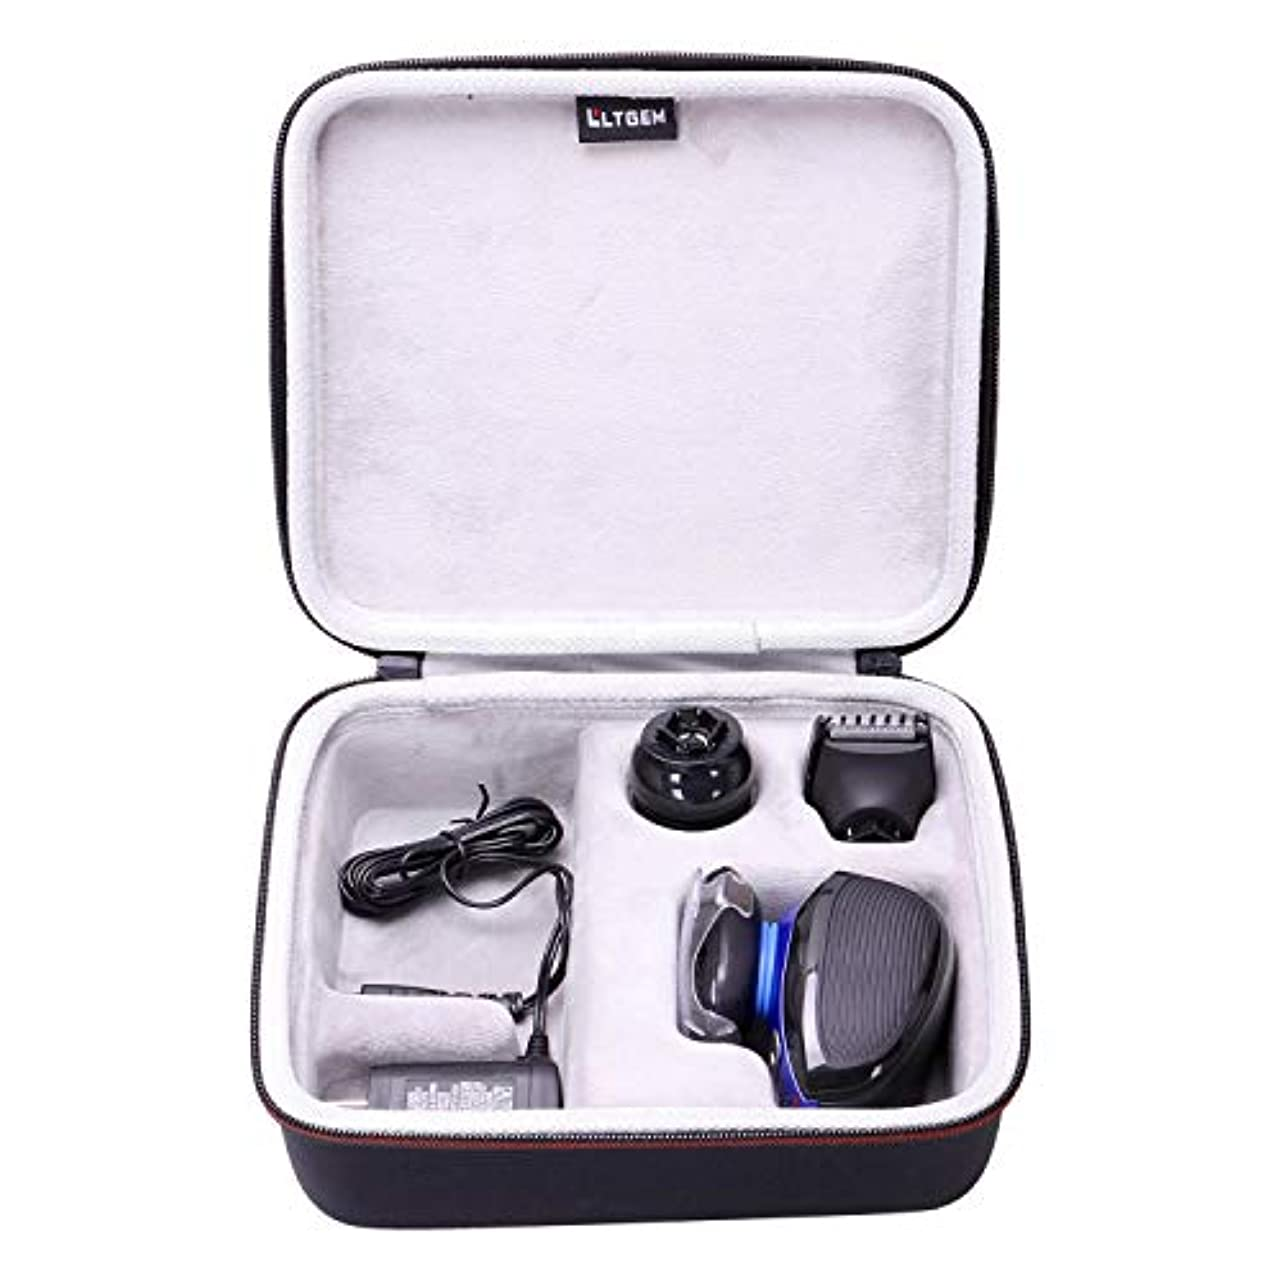 悪行郊外一元化するLTGEM Hard Case for Remington XR1400 Verso Wet & Dry Men's Electric Razor Shaver & Trimmer Grooming Kit 141[並行輸入]